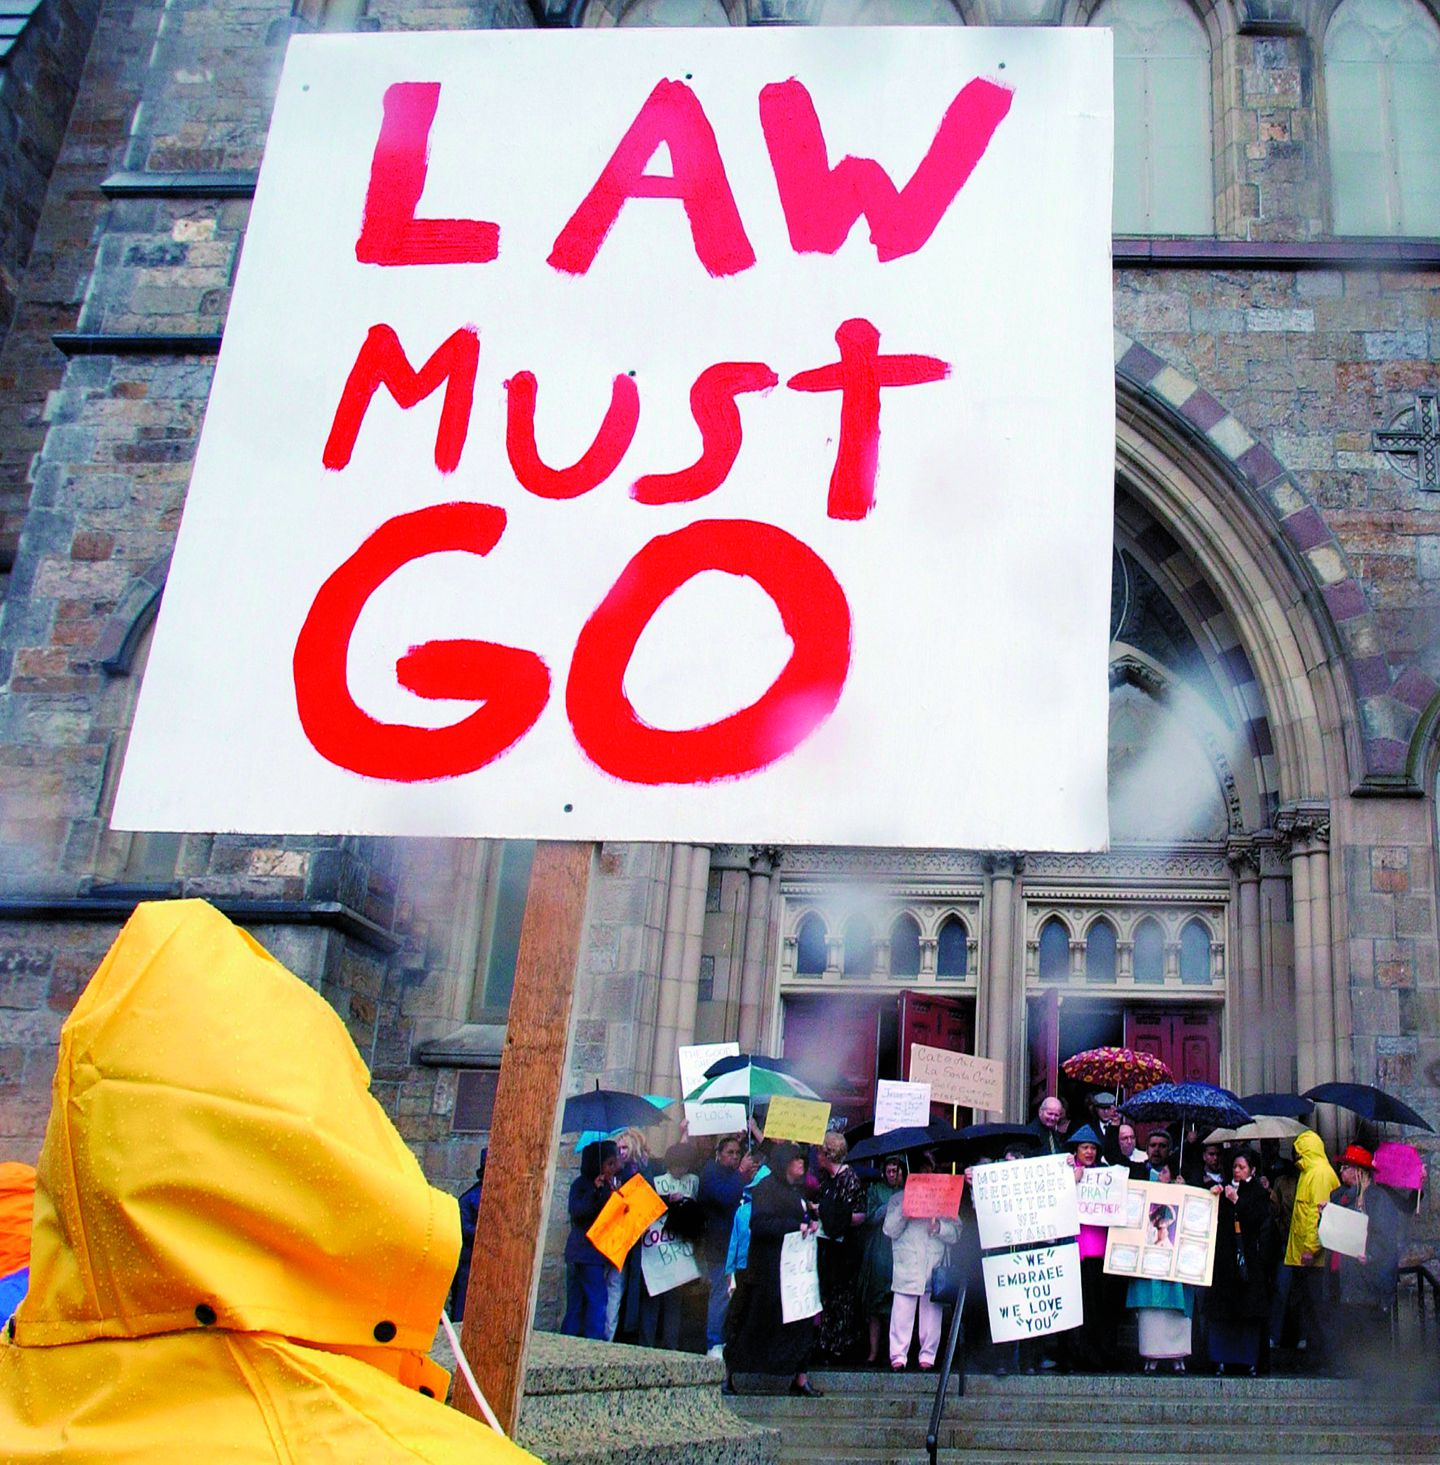 A man protesting against Cardinal Bernard Law faces a group of pro-Law protesters on the steps of the Cathedral of the Holy Cross in Boston in April 2002.MICHAEL DWYER/AP/FILE